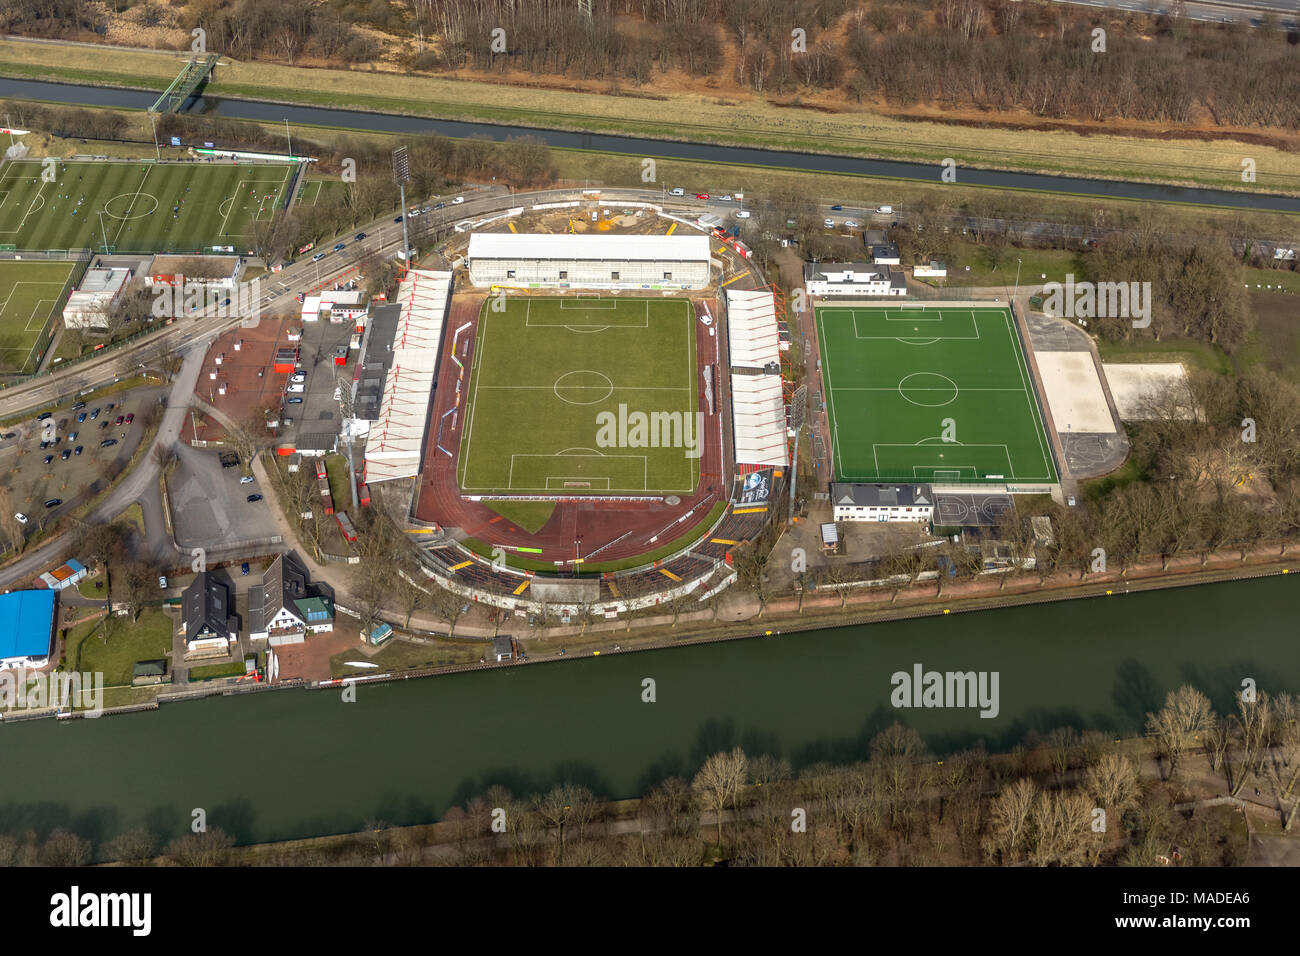 RWO Stadium Niederrhein, Lindnerstraße with new grandstand, in Oberhausen in North Rhine-Westphalia. Oberhausen, Ruhr, Nordrhein-Westfalen, Germany, O - Stock Image